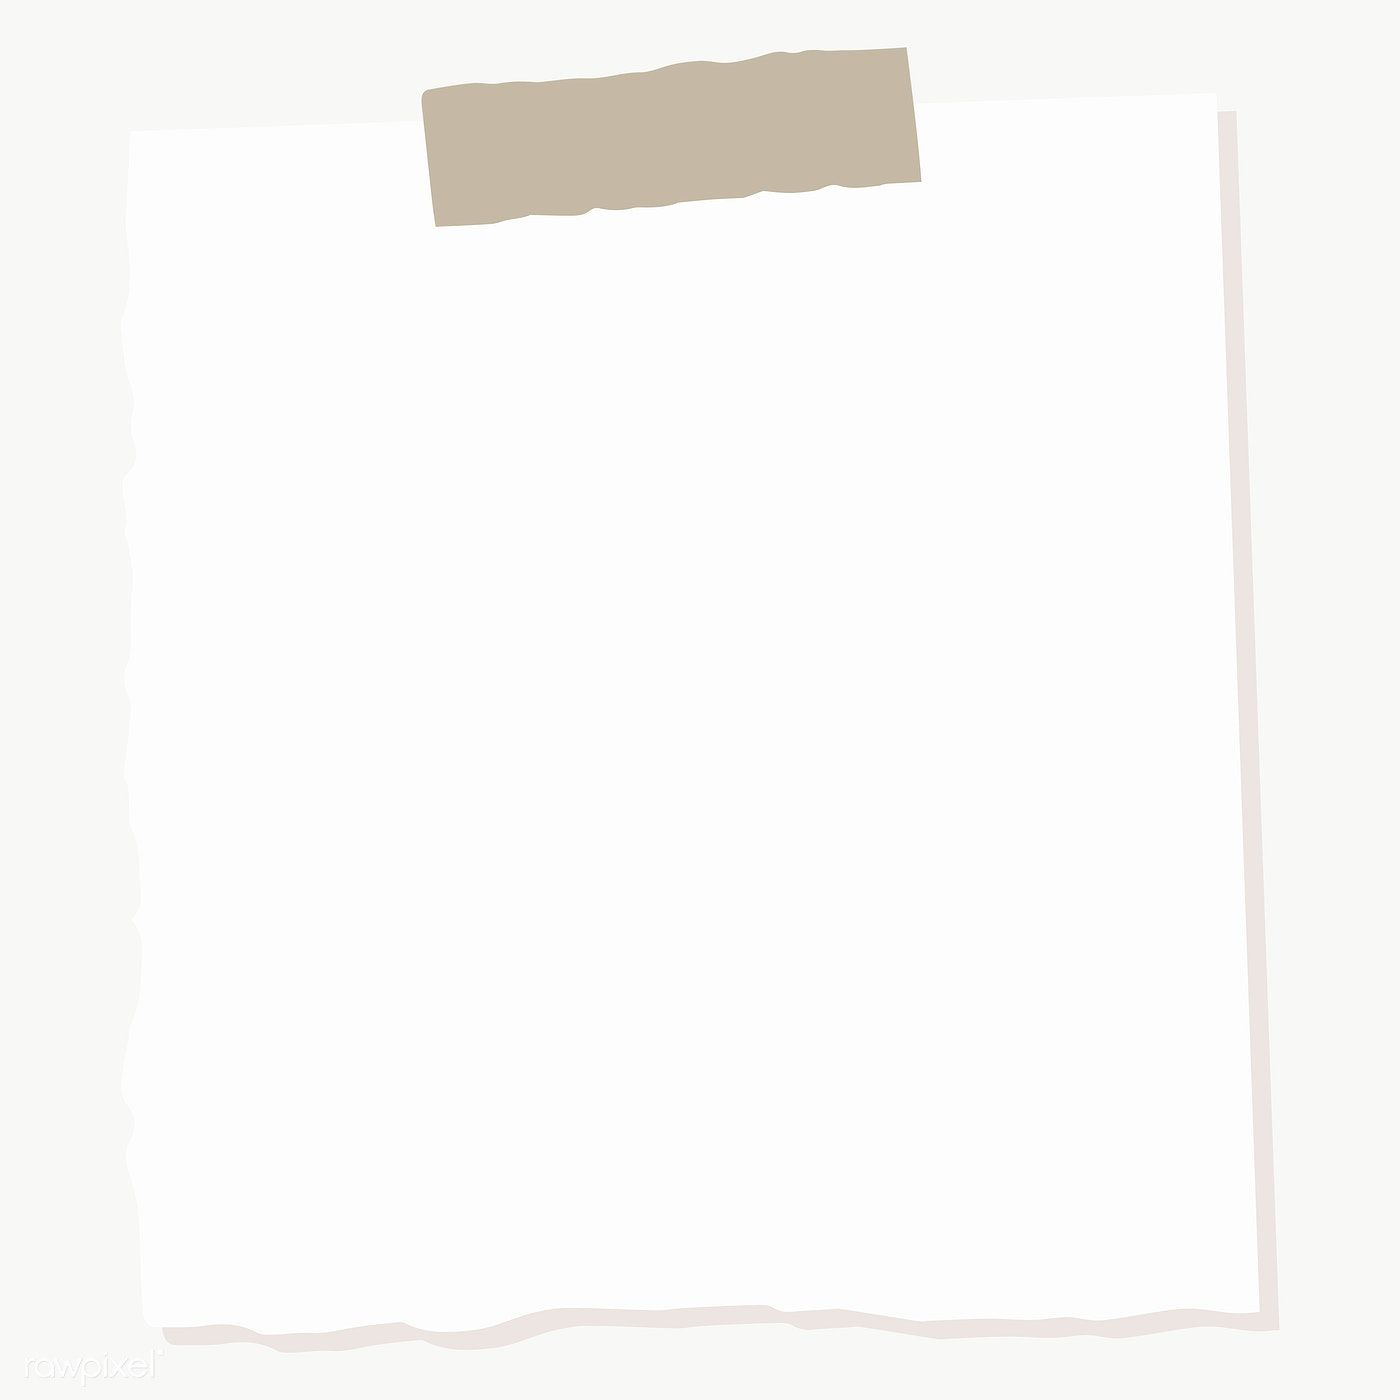 White Square Paper Note Social Ads Template Transparent Png Free Image By Rawpixel Com Manotang Note Paper Square Paper Social Ads